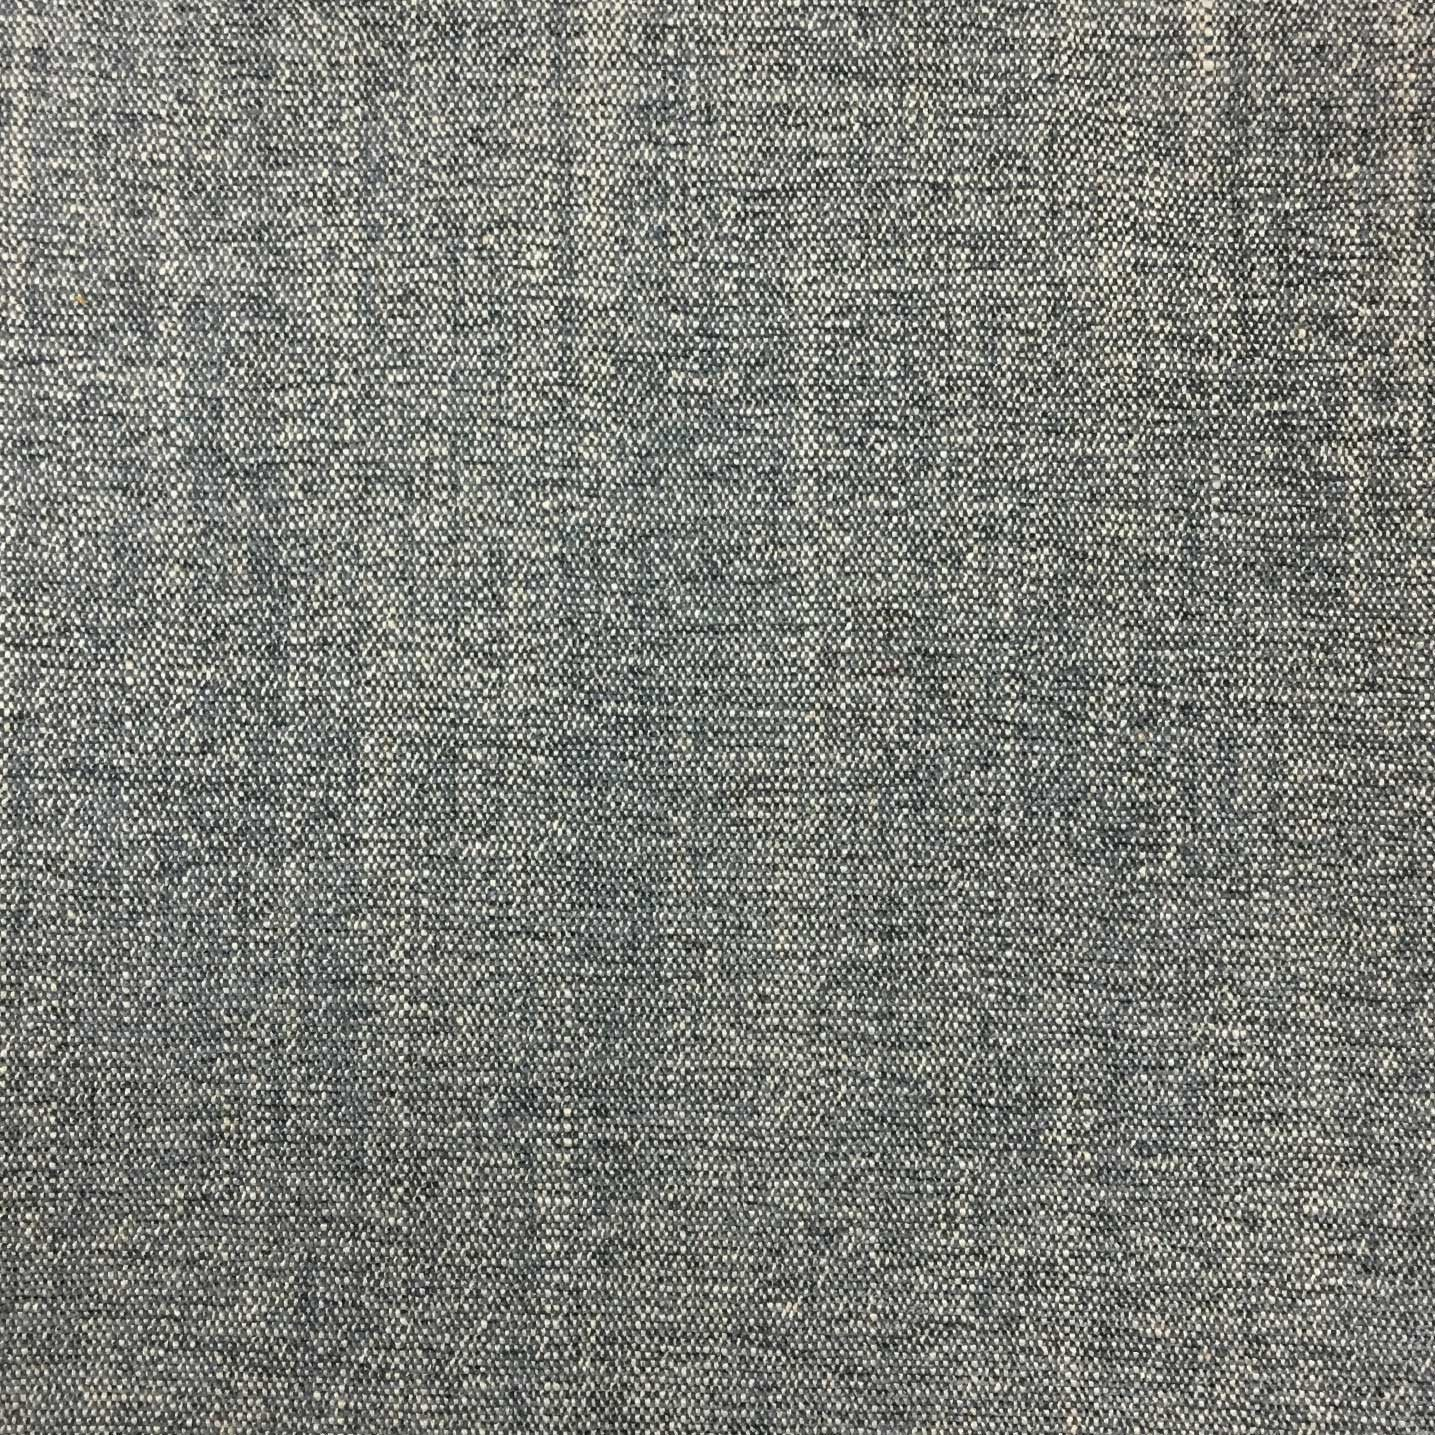 Upholstery Furniture Fabric: Linen Blend Textured Chenille Upholstery Fabric